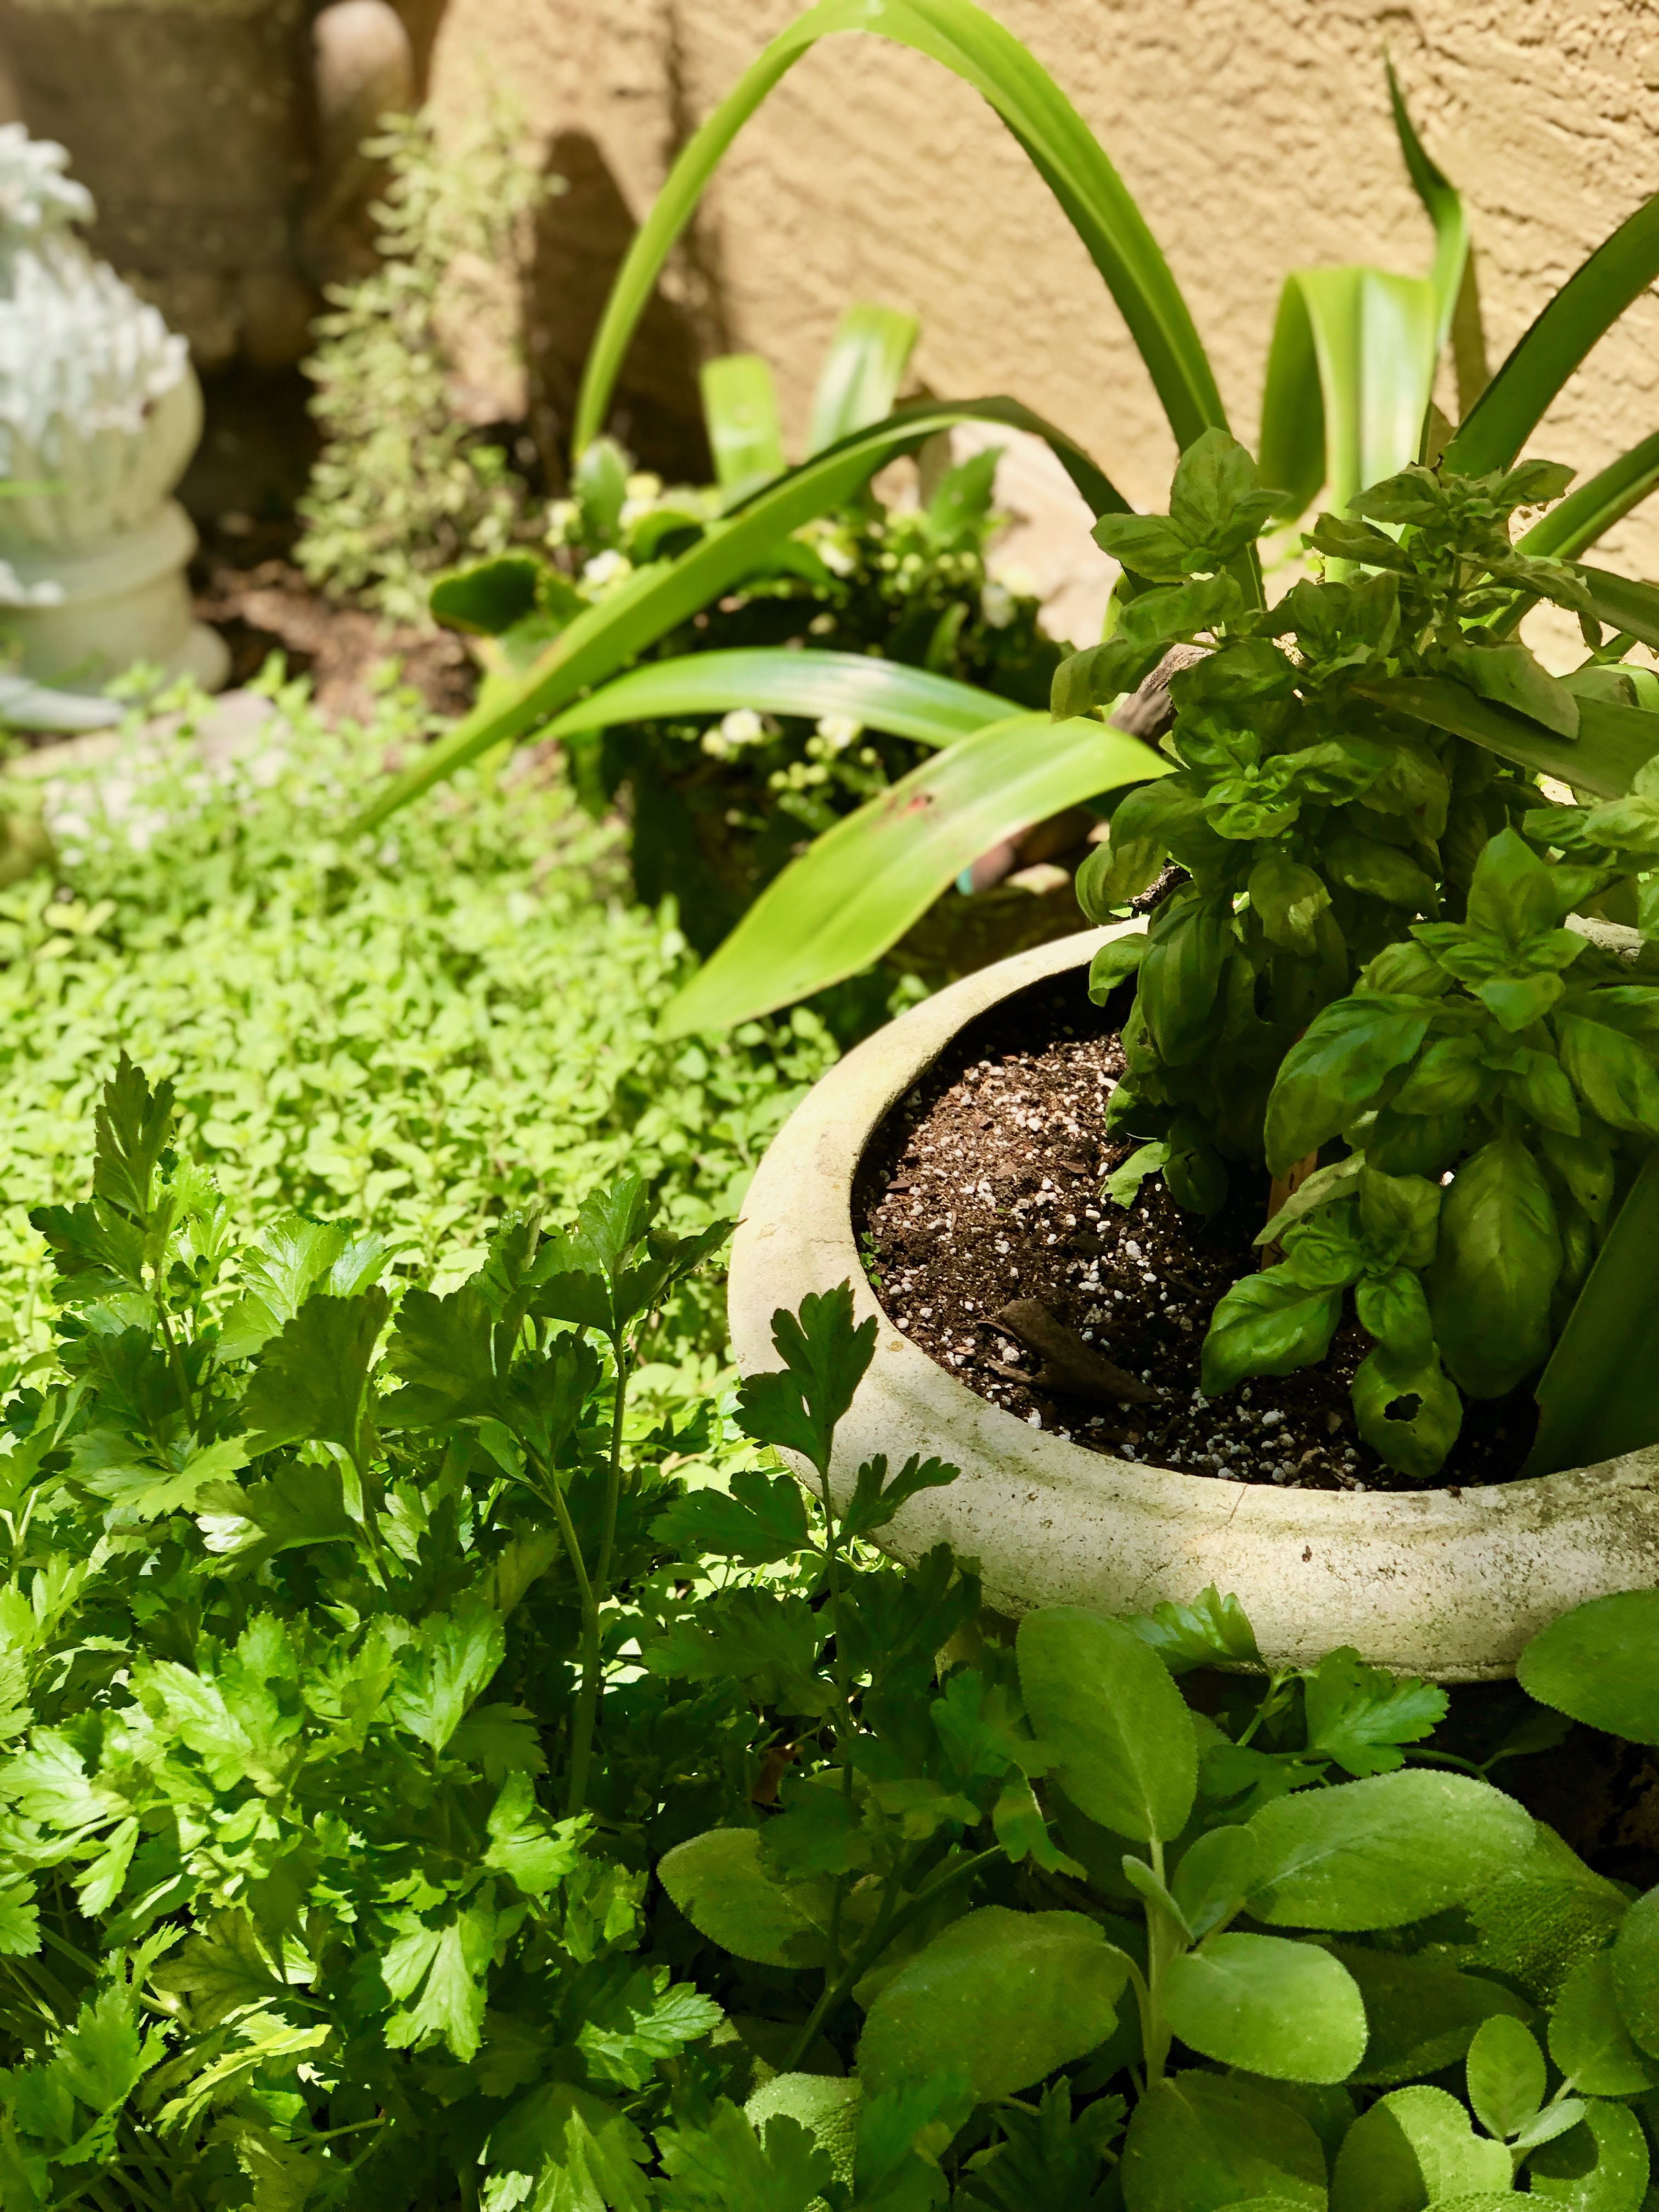 Herb garden with pot filled with basil surrounded by sage, Italian parsley, thyme and oregano. Garden finial in background